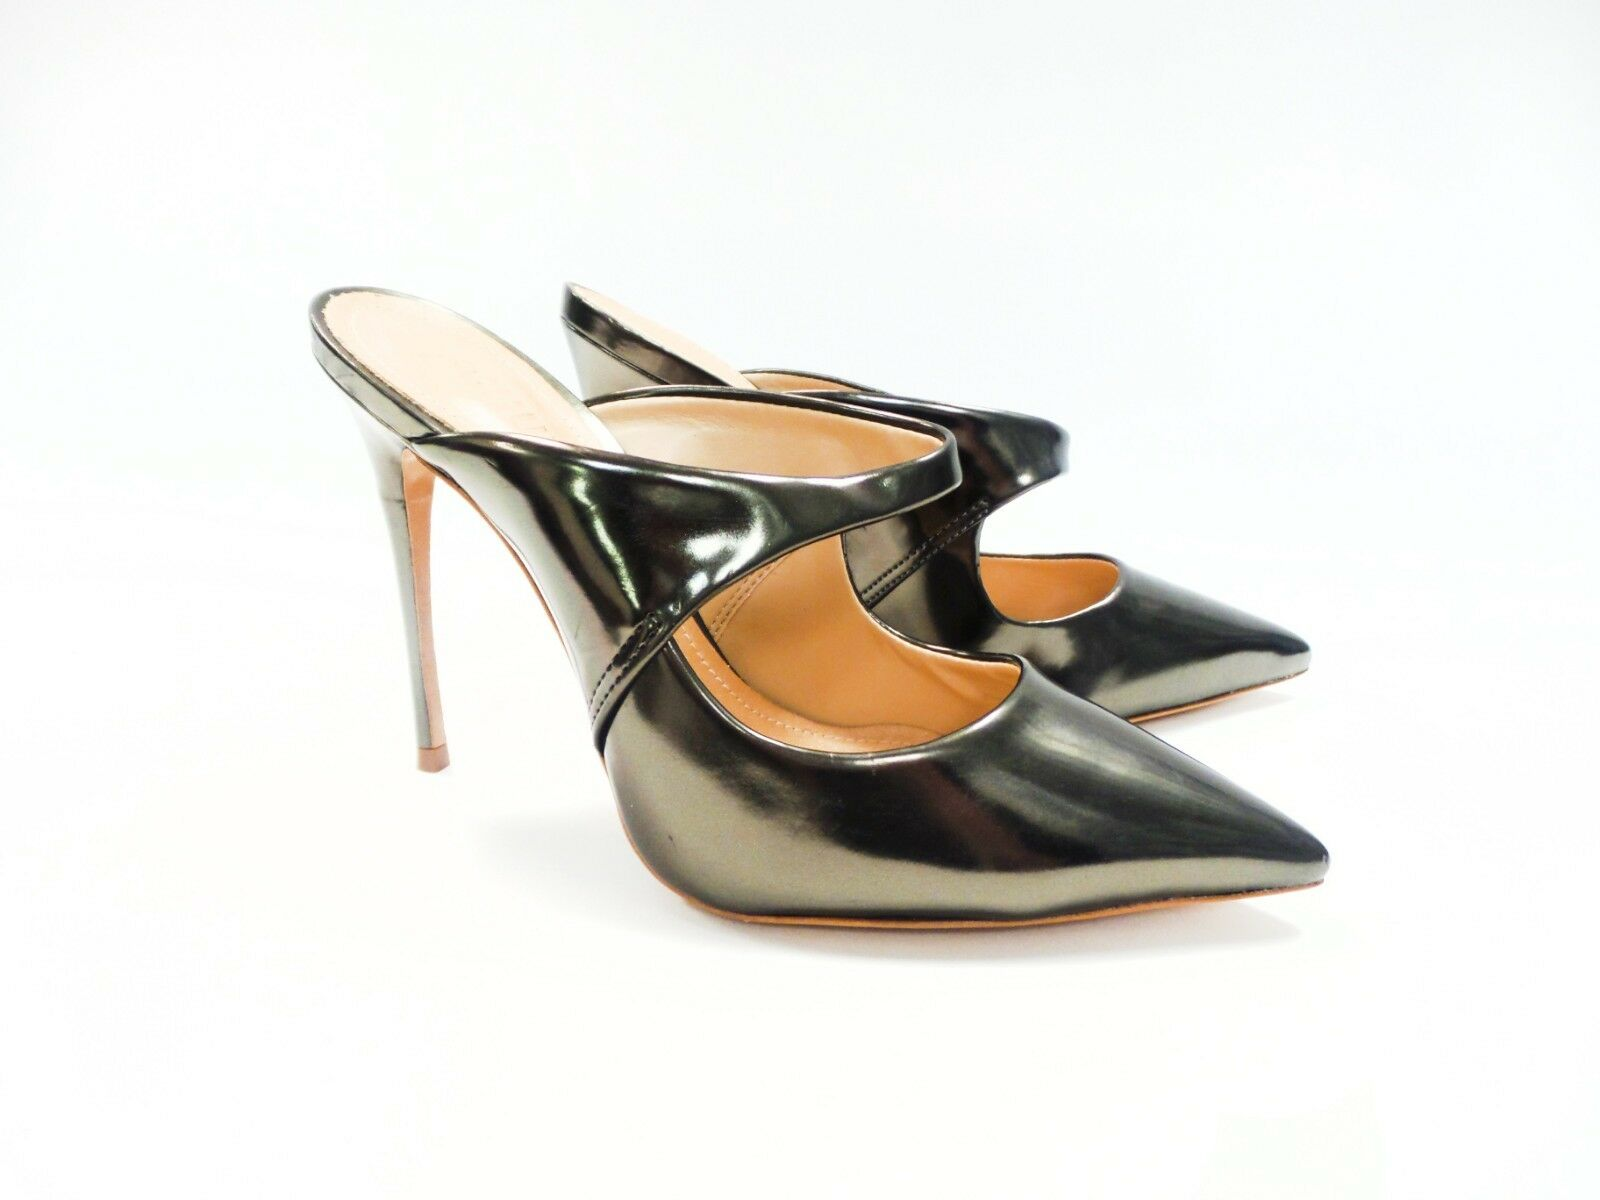 Schutz   Metallic Pointed Toe Pumps Pumps Pumps Size 7 7d684f